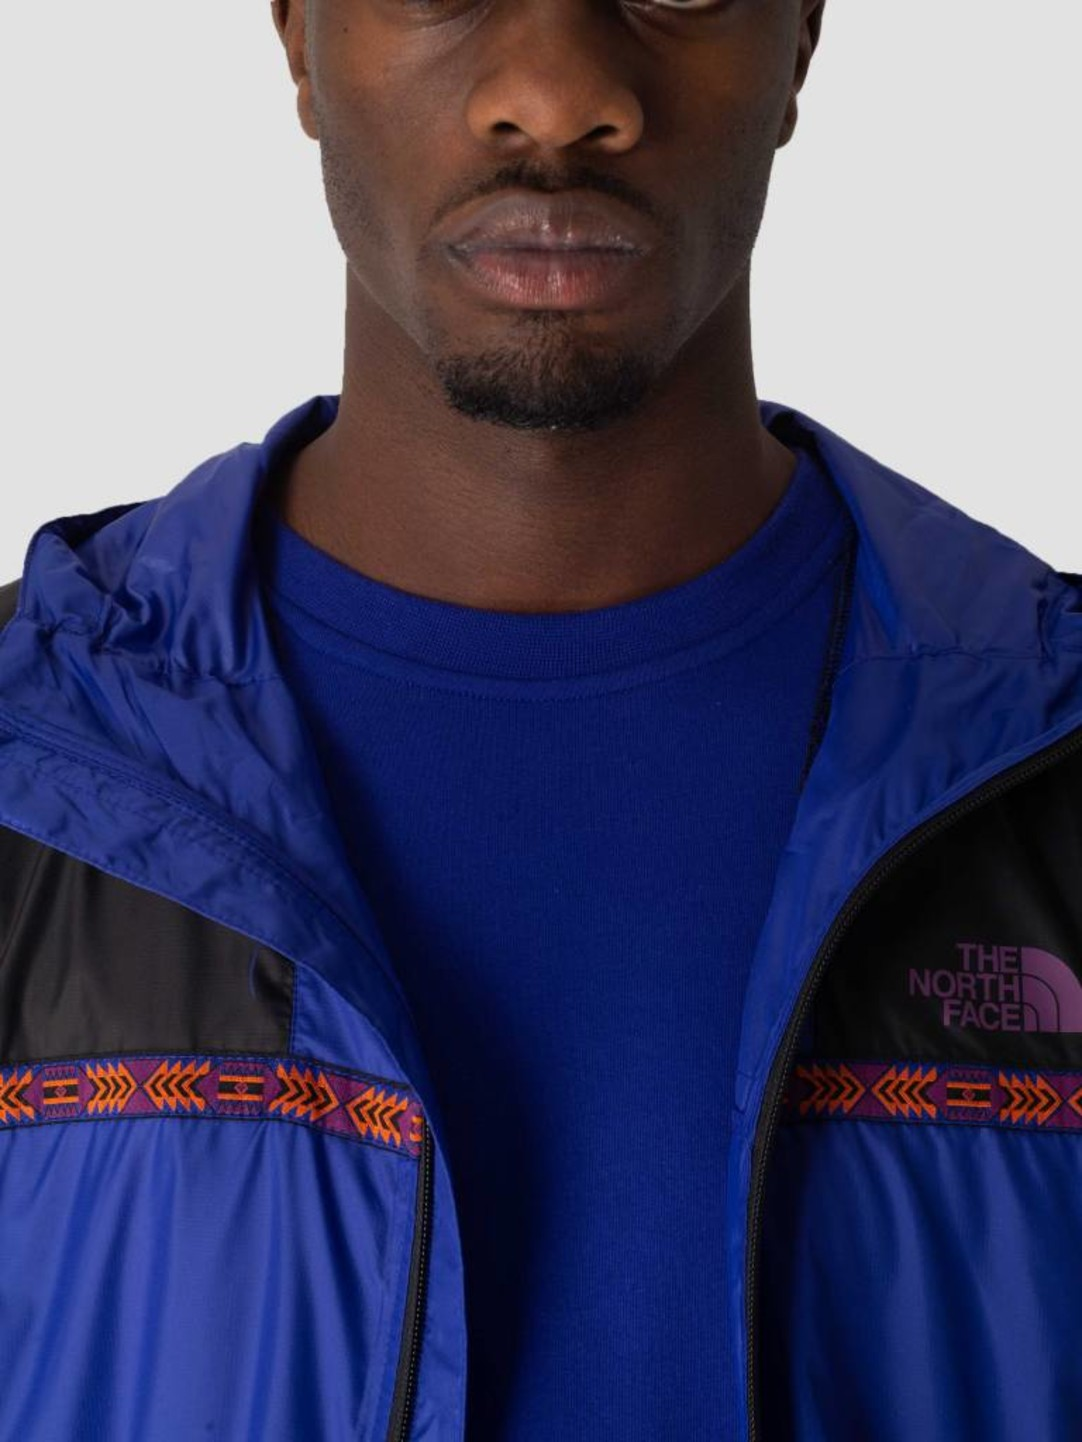 The North Face The North Face Nvlty Cyclone 2 Aztec Blu Black T93T2R6SK